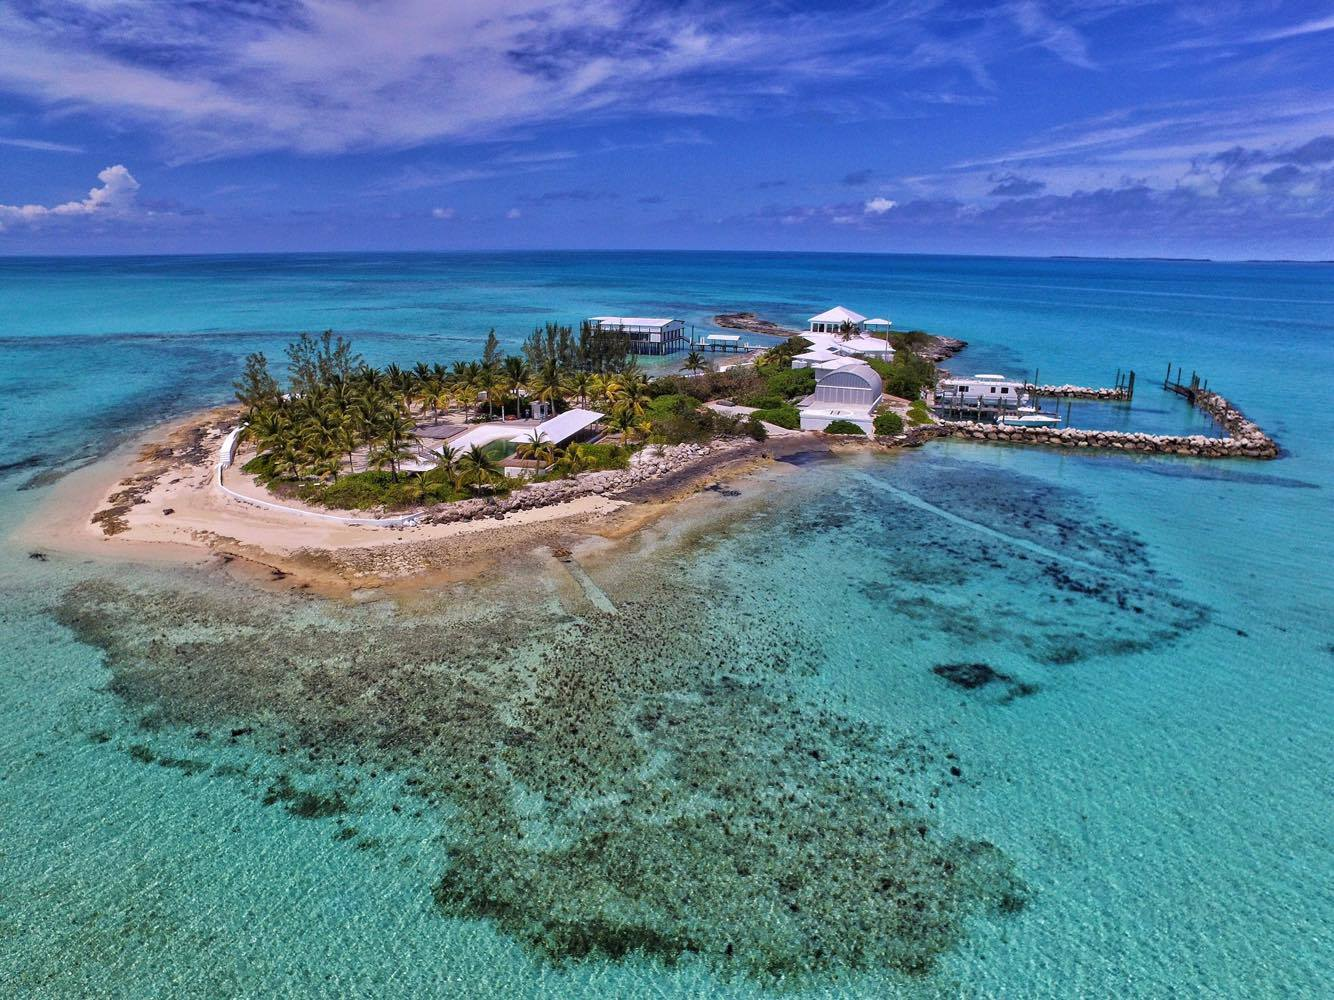 Đảo tư nhân vì Bán tại Private Island North Eleuthera - Exclusive - Unique - Exciting Commercial Possibilities! Eleuthera, Bahamas